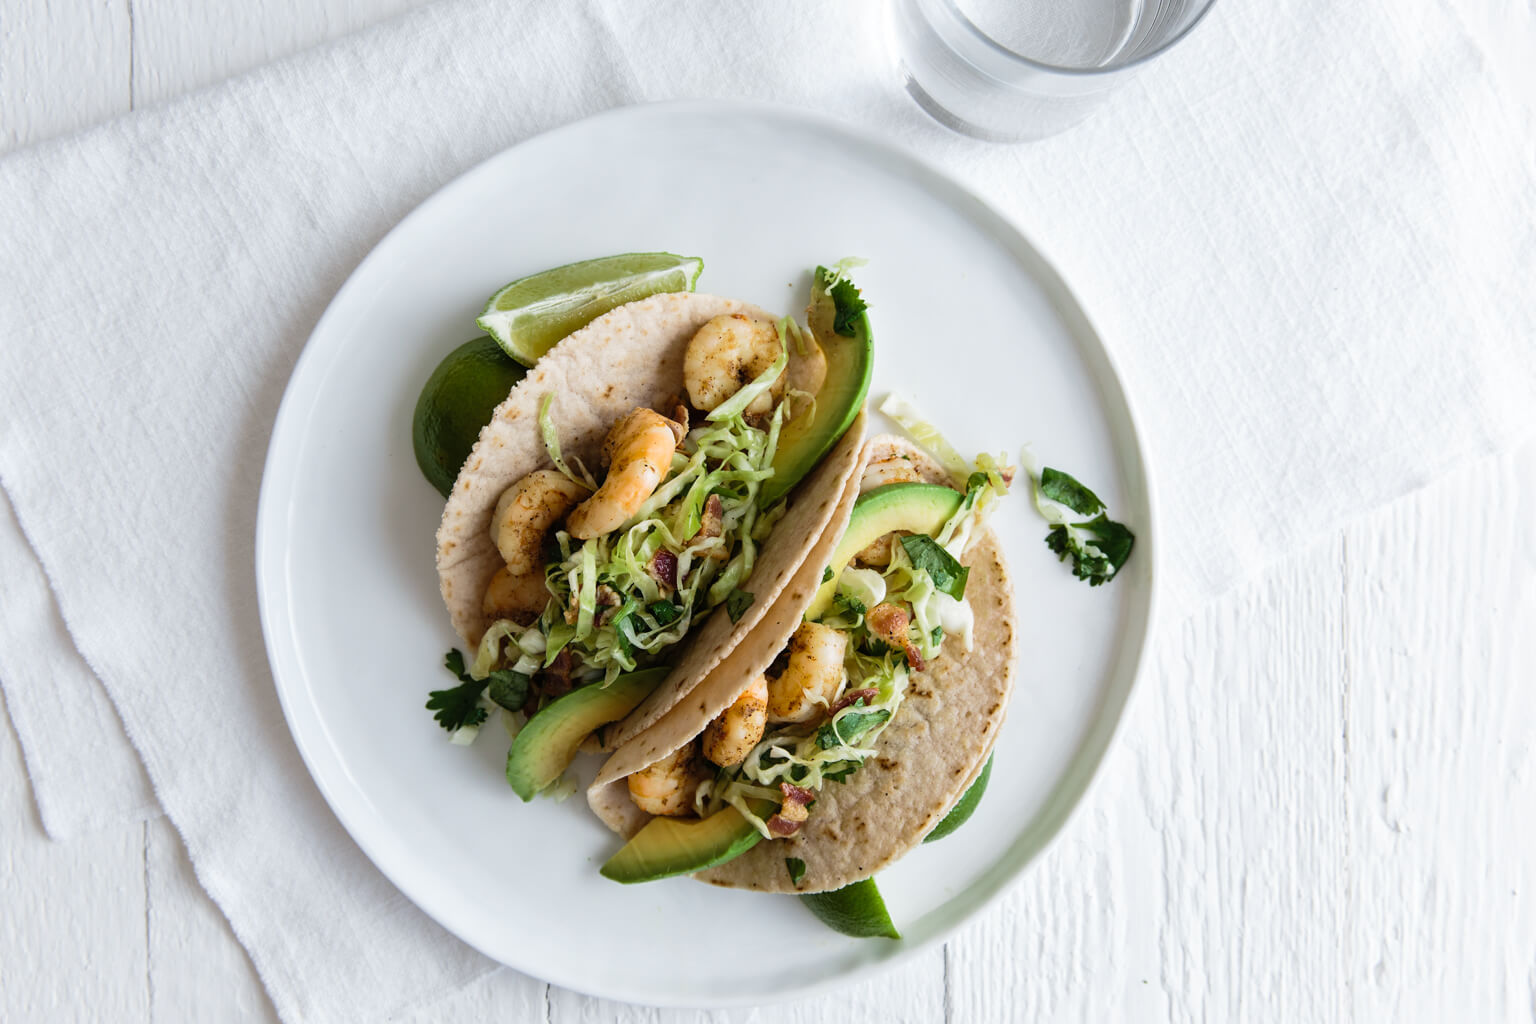 Shrimp Tacos with Cilantro, Lime, Bacon Slaw. Gluten-free and paleo.